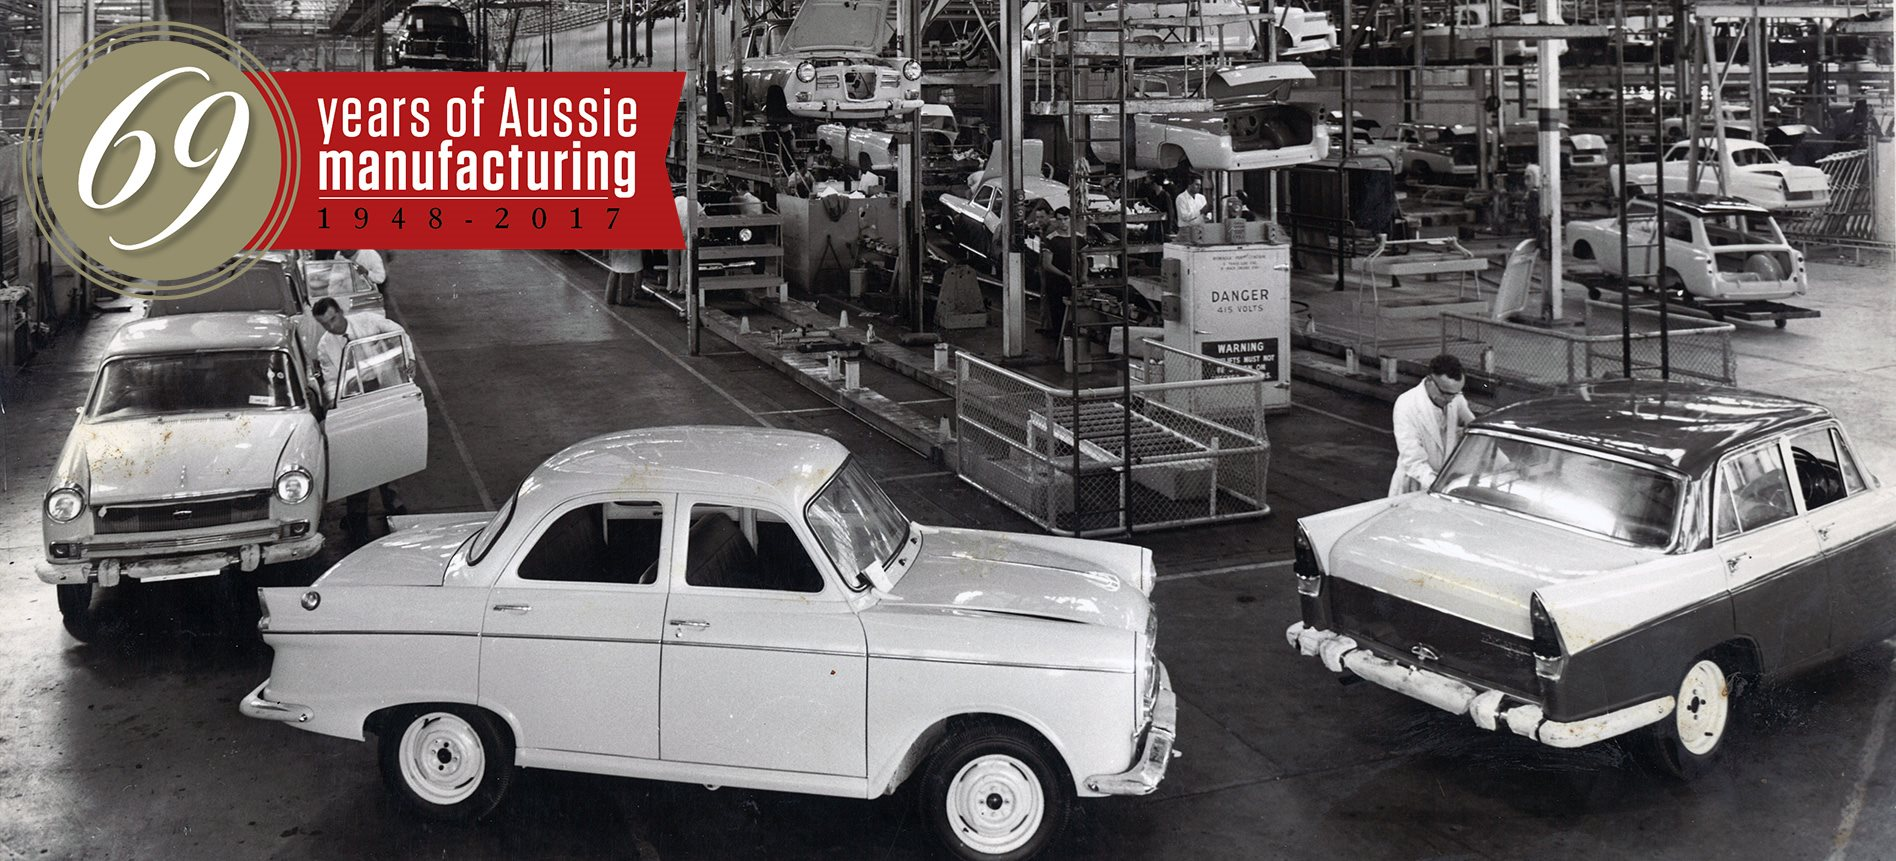 69 years of Australian manufacturing